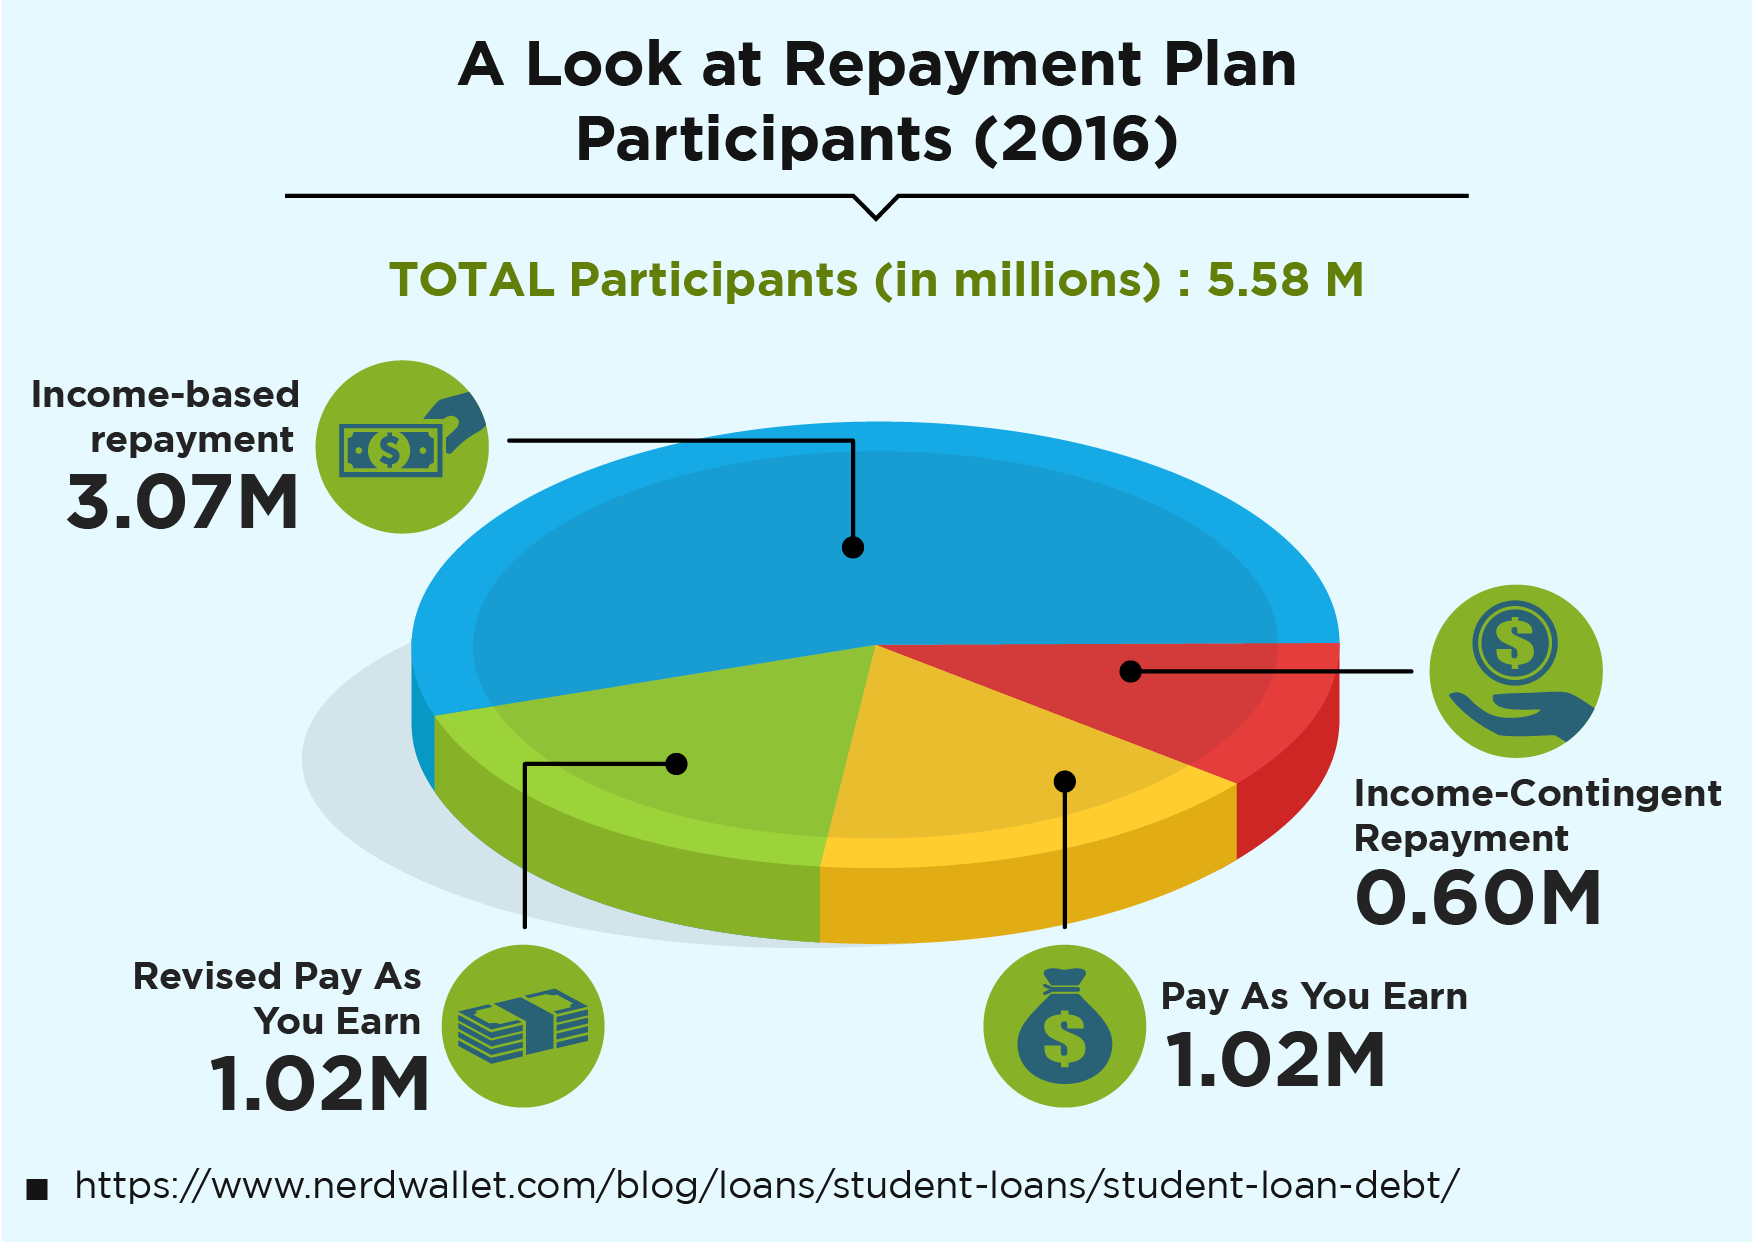 A Look at Repayment Plan Participants (2016)